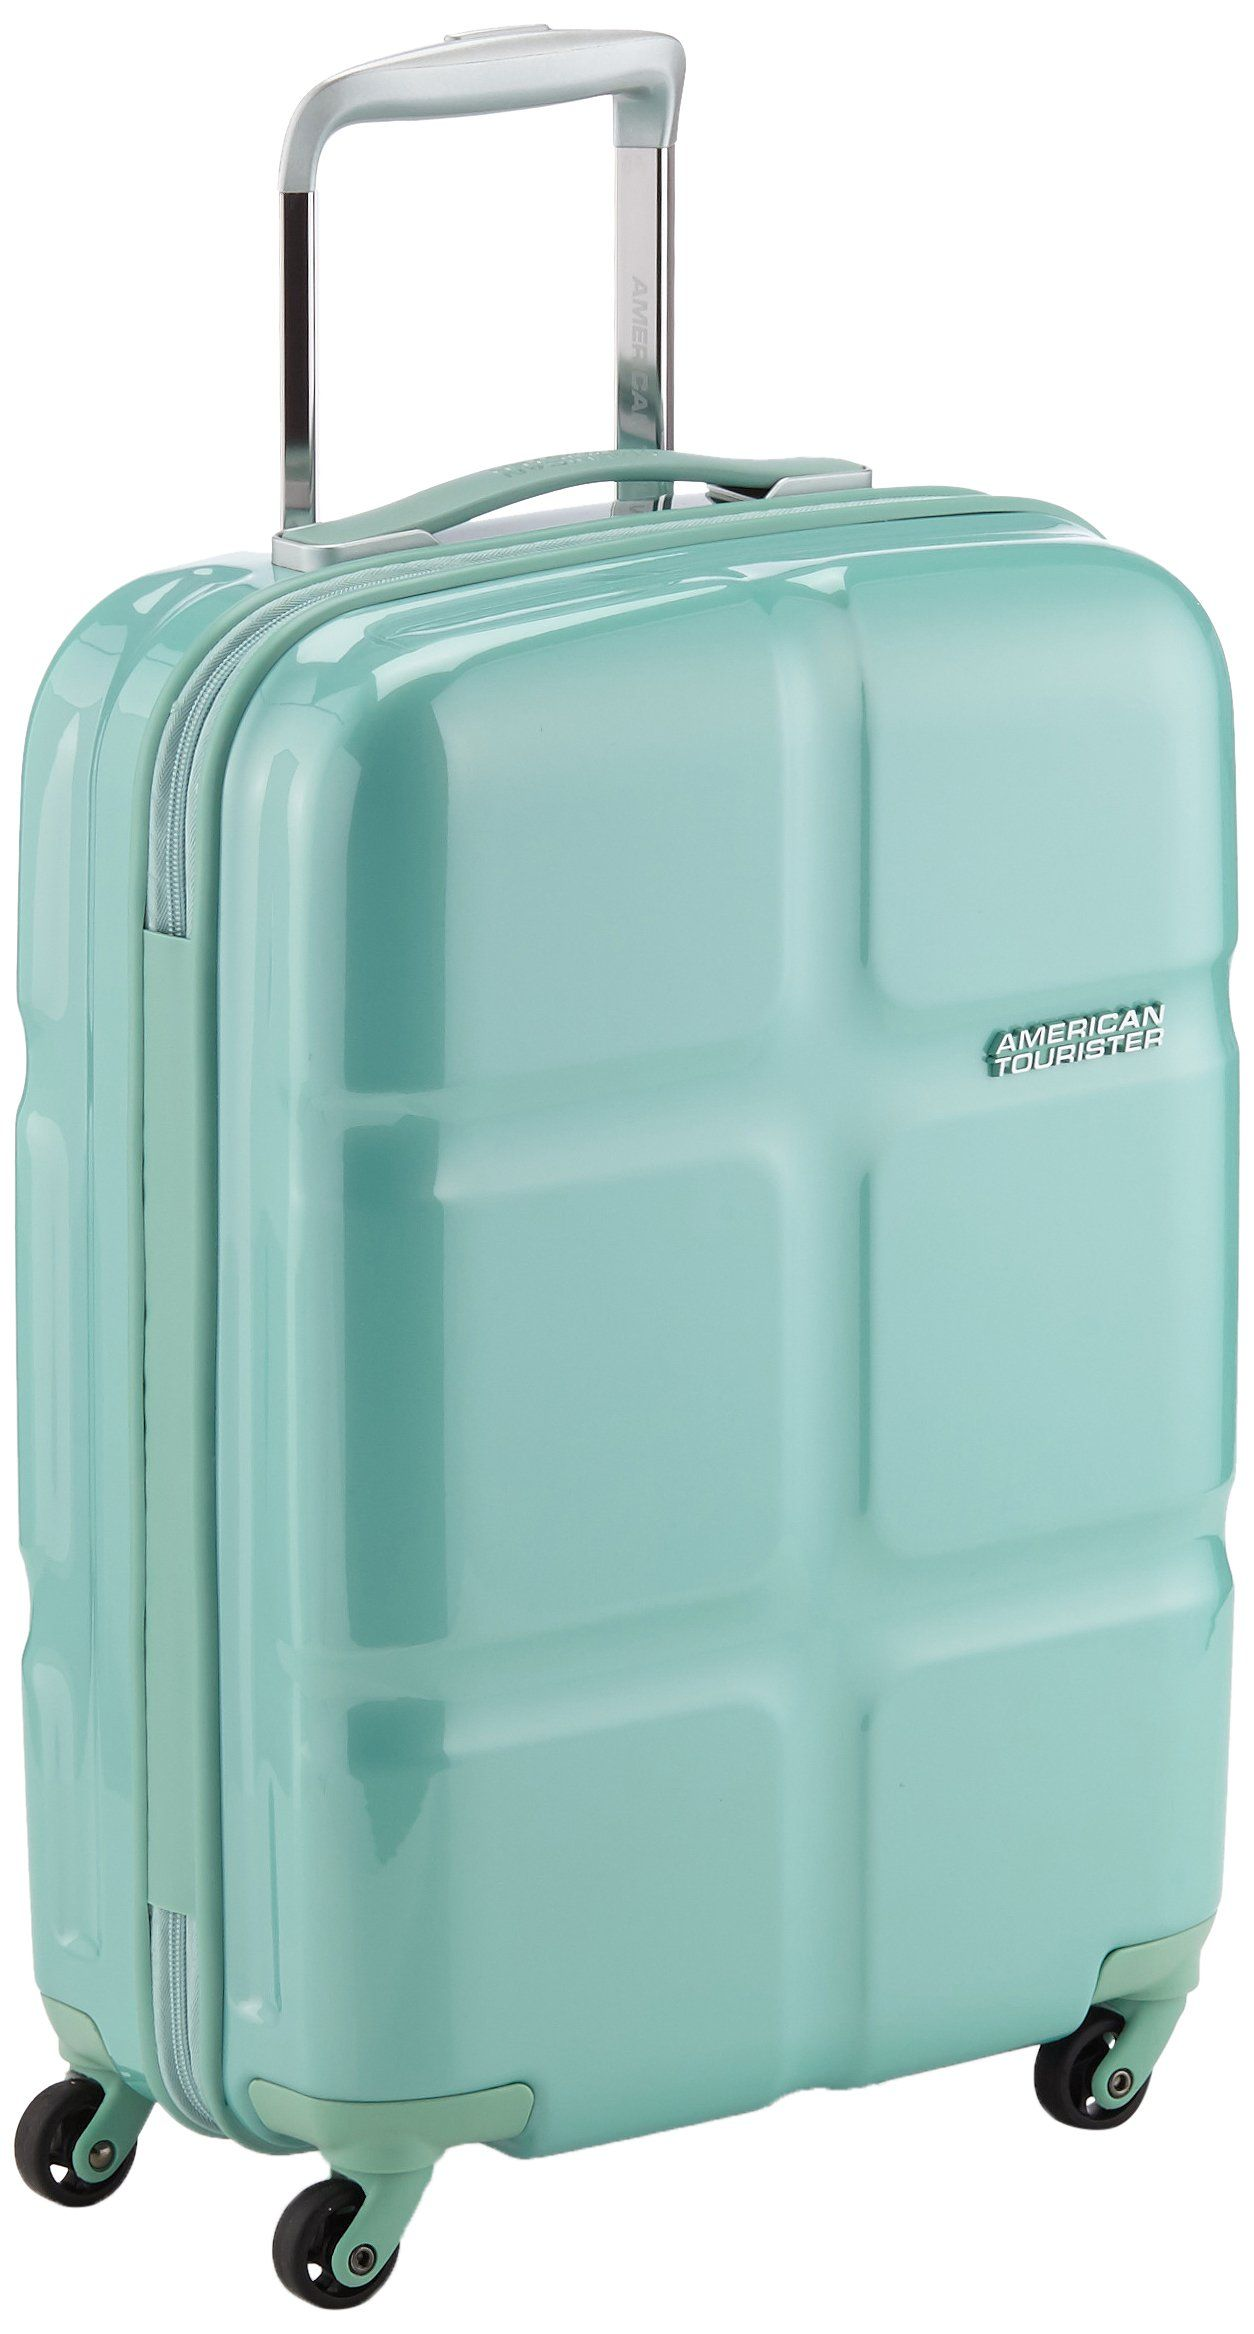 6ac658f8d305 American Tourister Suitcase